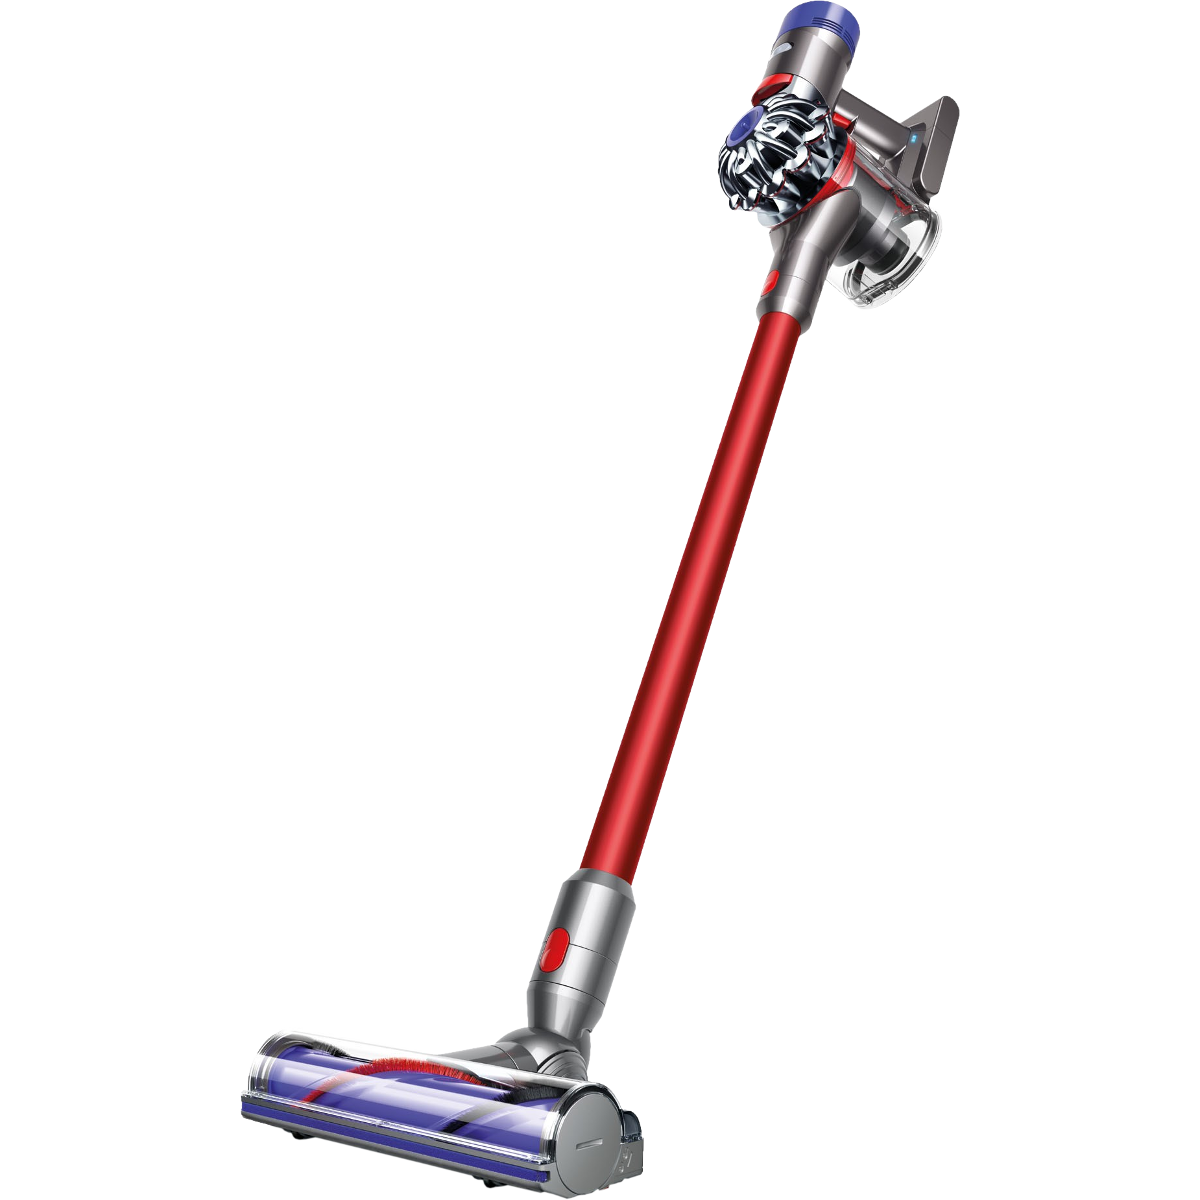 dyson v8 absolute extra aspirateur sans fil 425 watts rouge argent aspirateurs balais. Black Bedroom Furniture Sets. Home Design Ideas